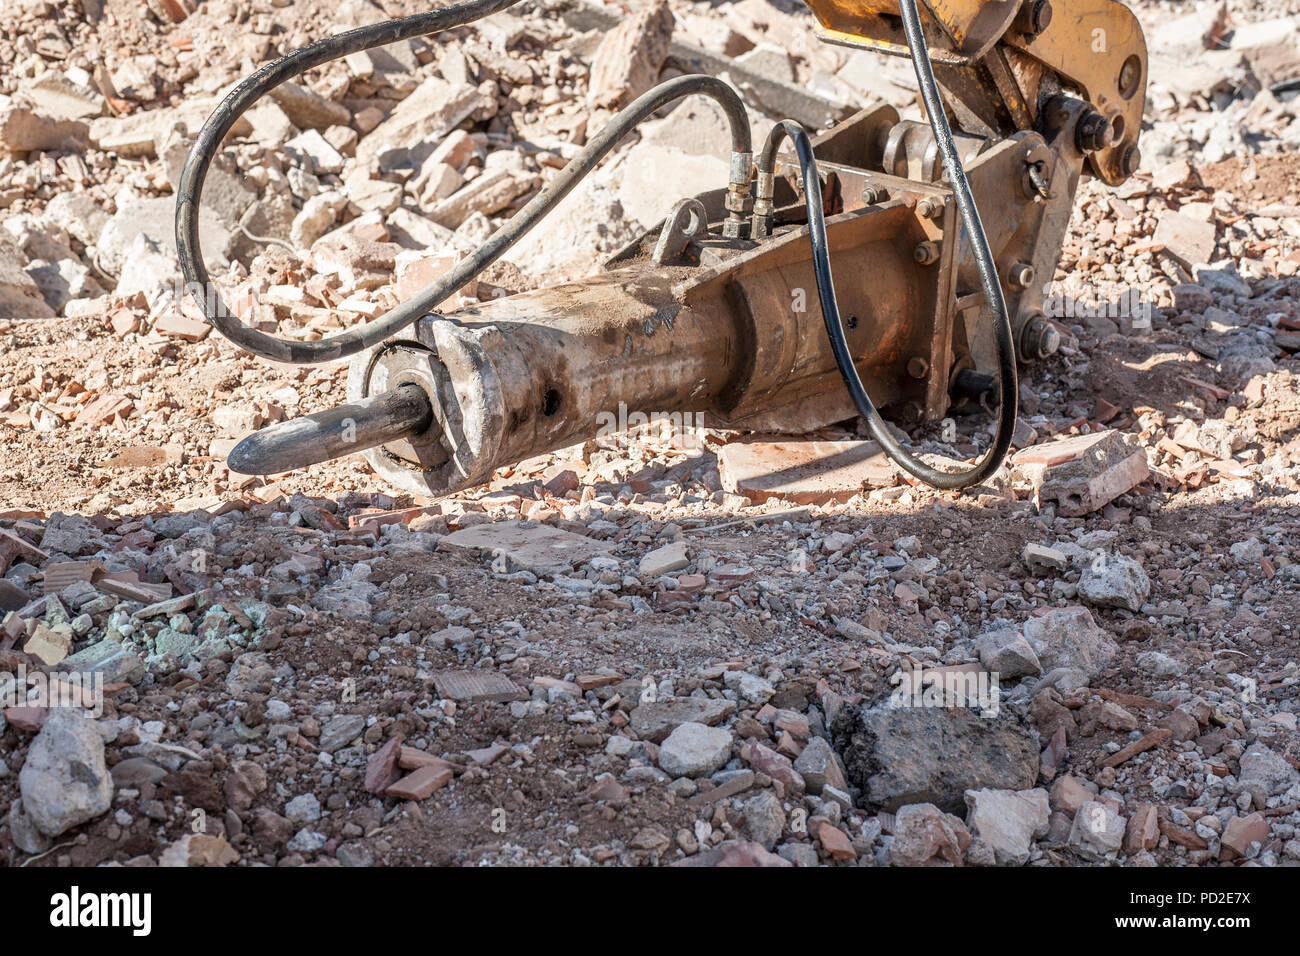 Excavator attachment for drill or jackhammer. Closeup - Stock Image